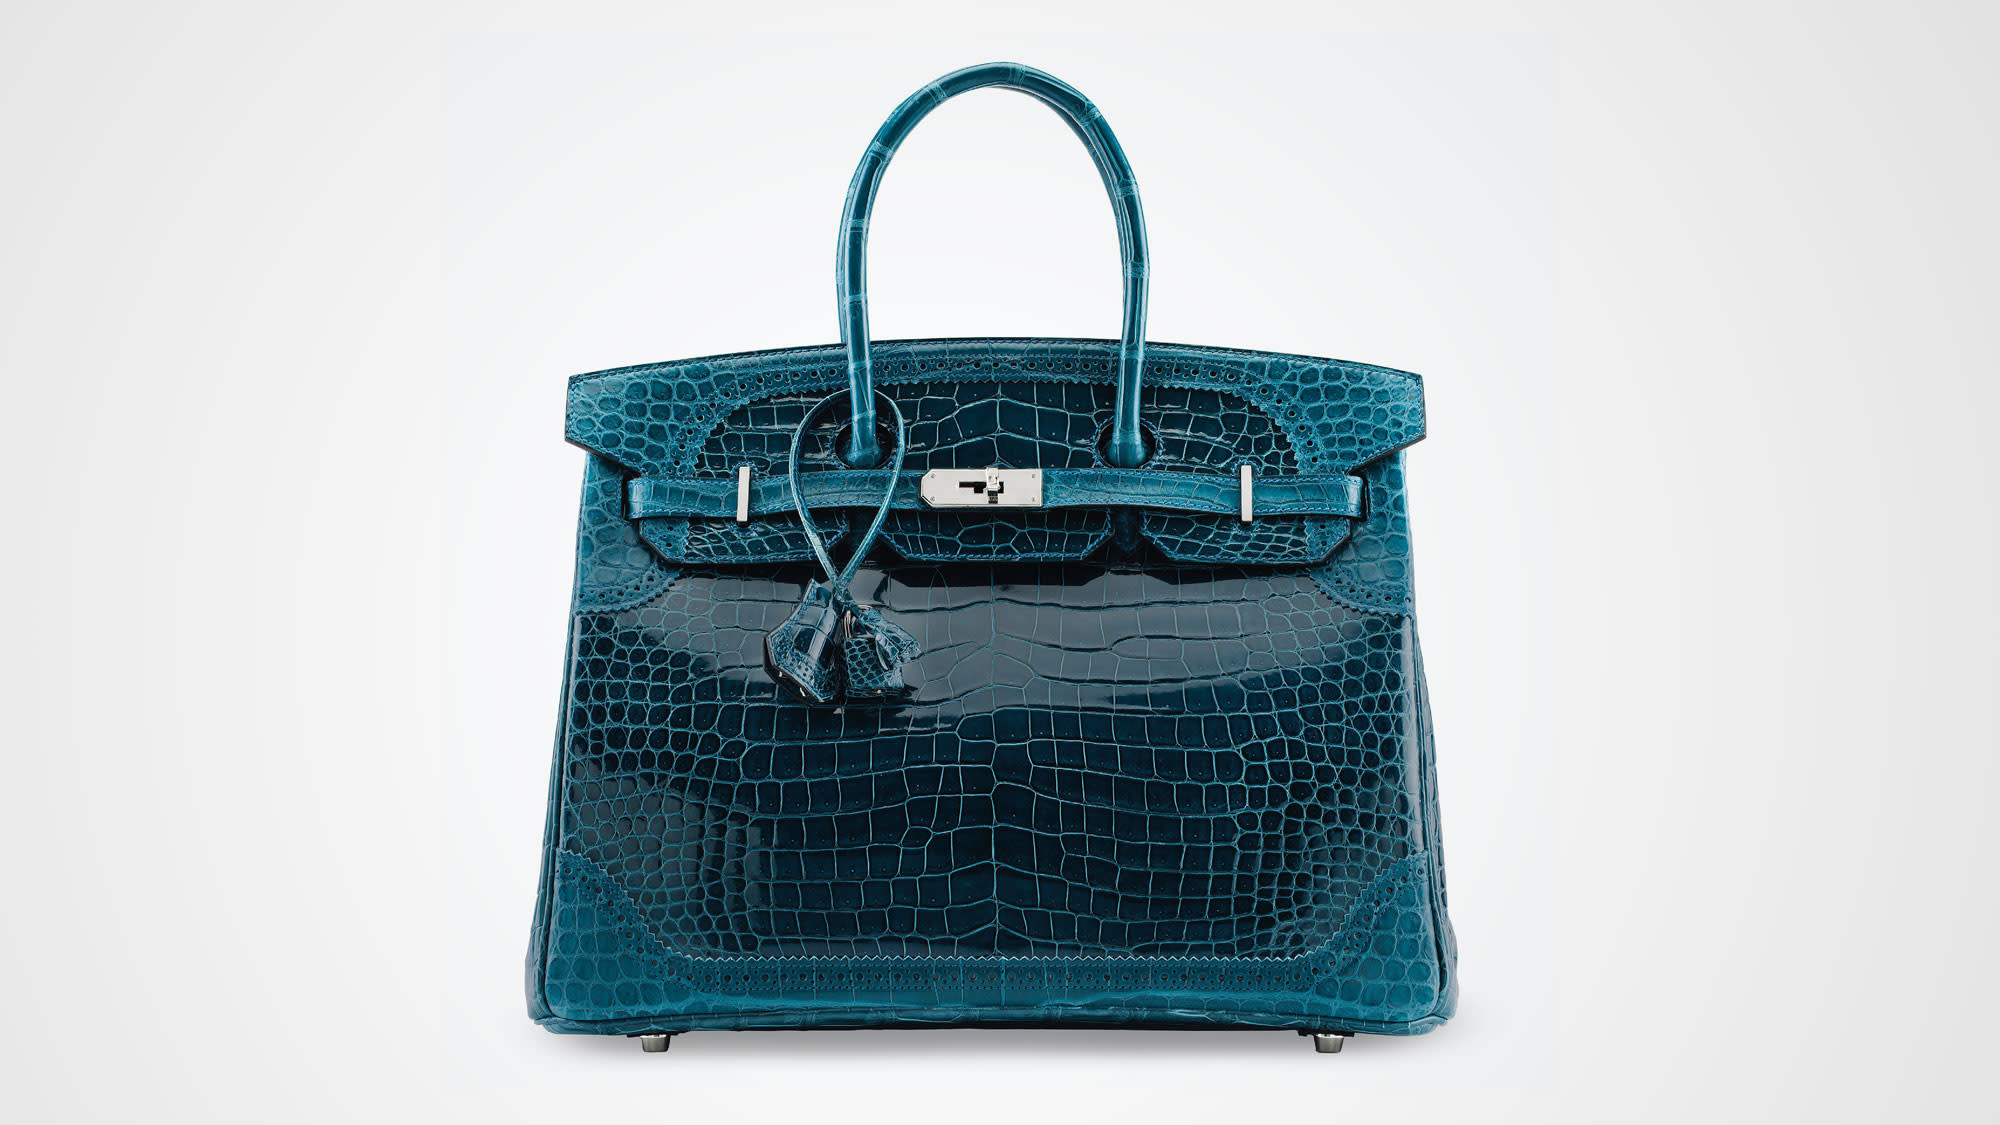 Hermès Birkin handbag expected to sell for over  50 6e8333e2d5f47